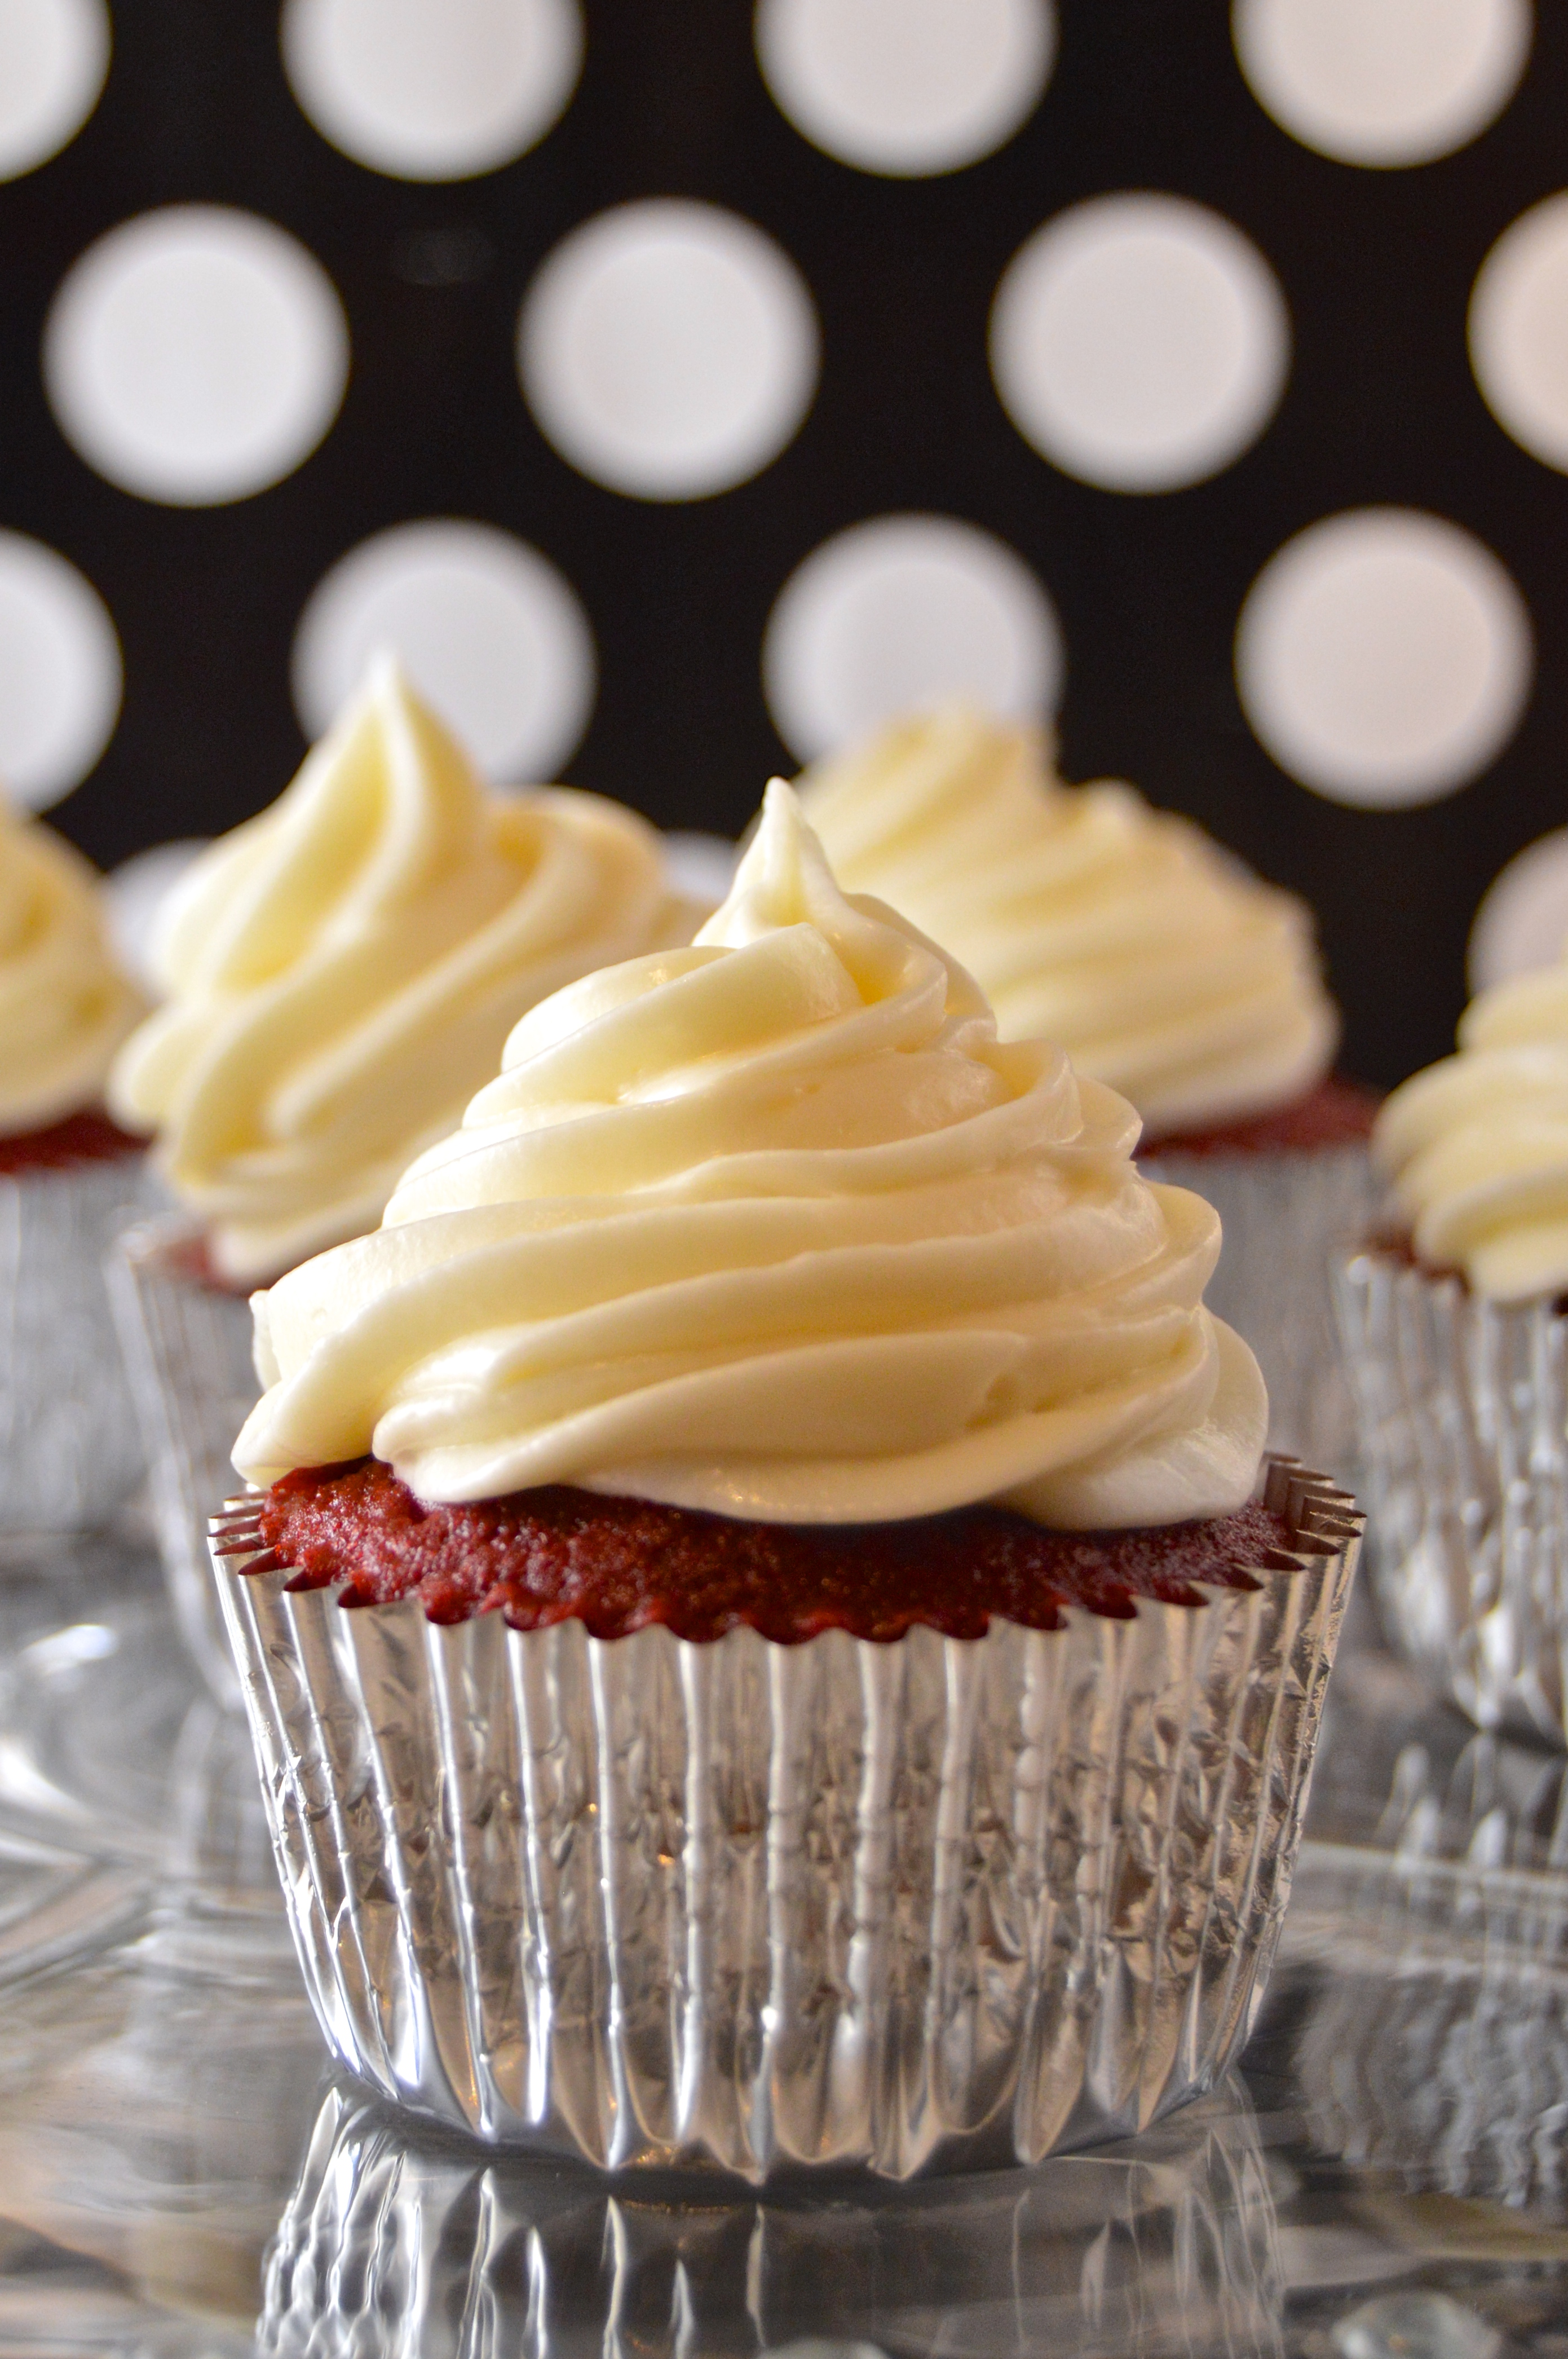 Homemade Cupcakes with Cream Cheese Frosting